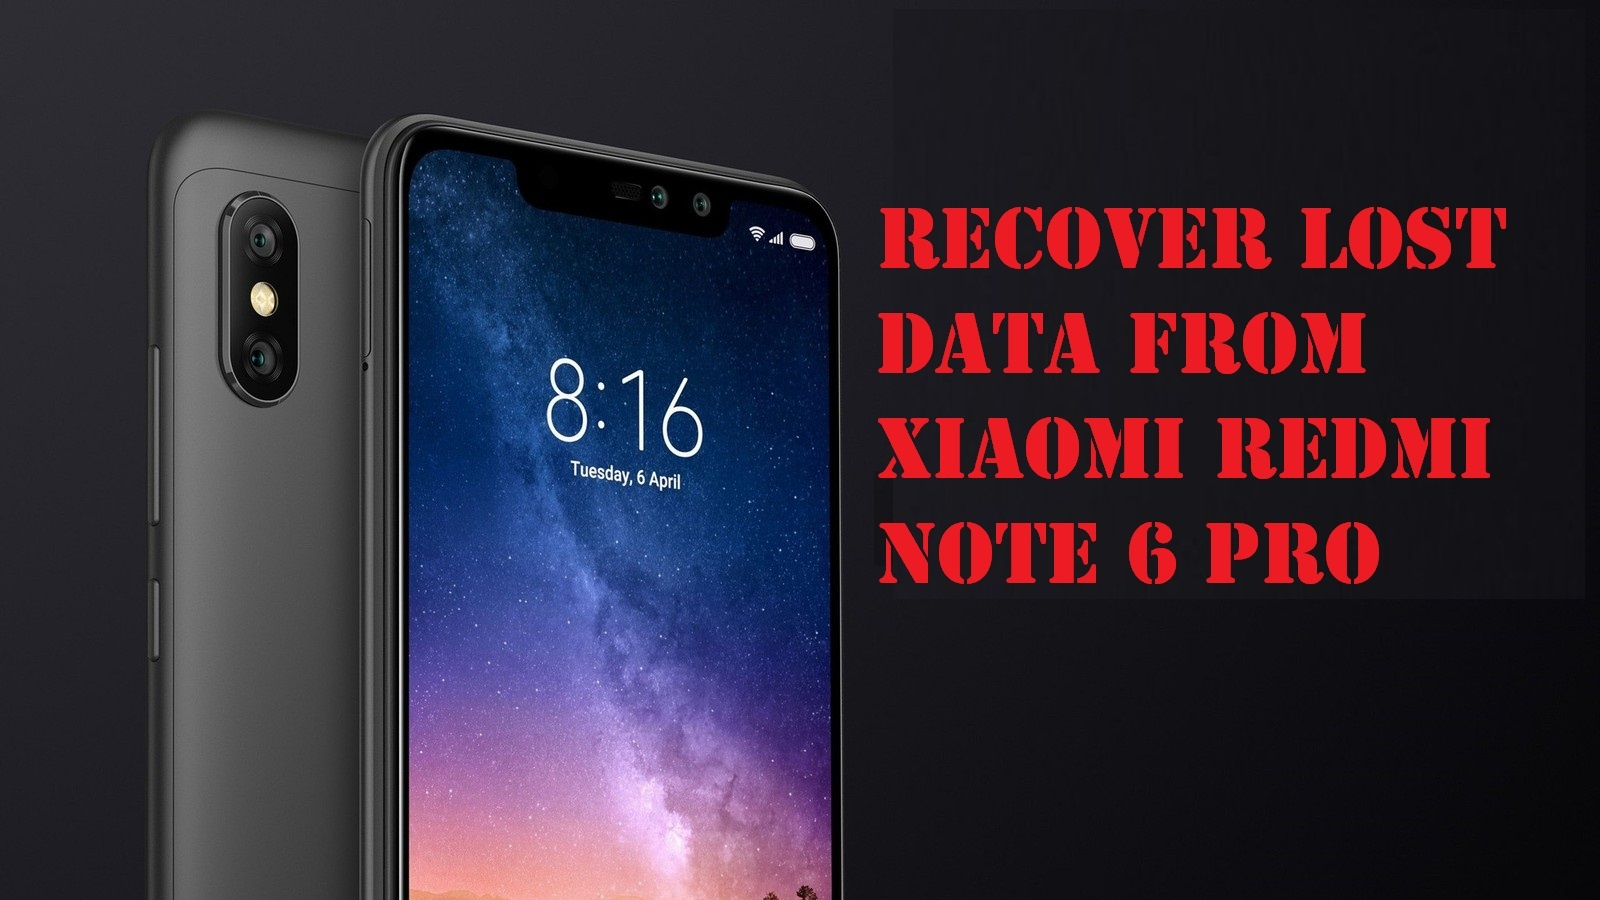 recover lost data from Xiaomi Redmi Note 6 Pro